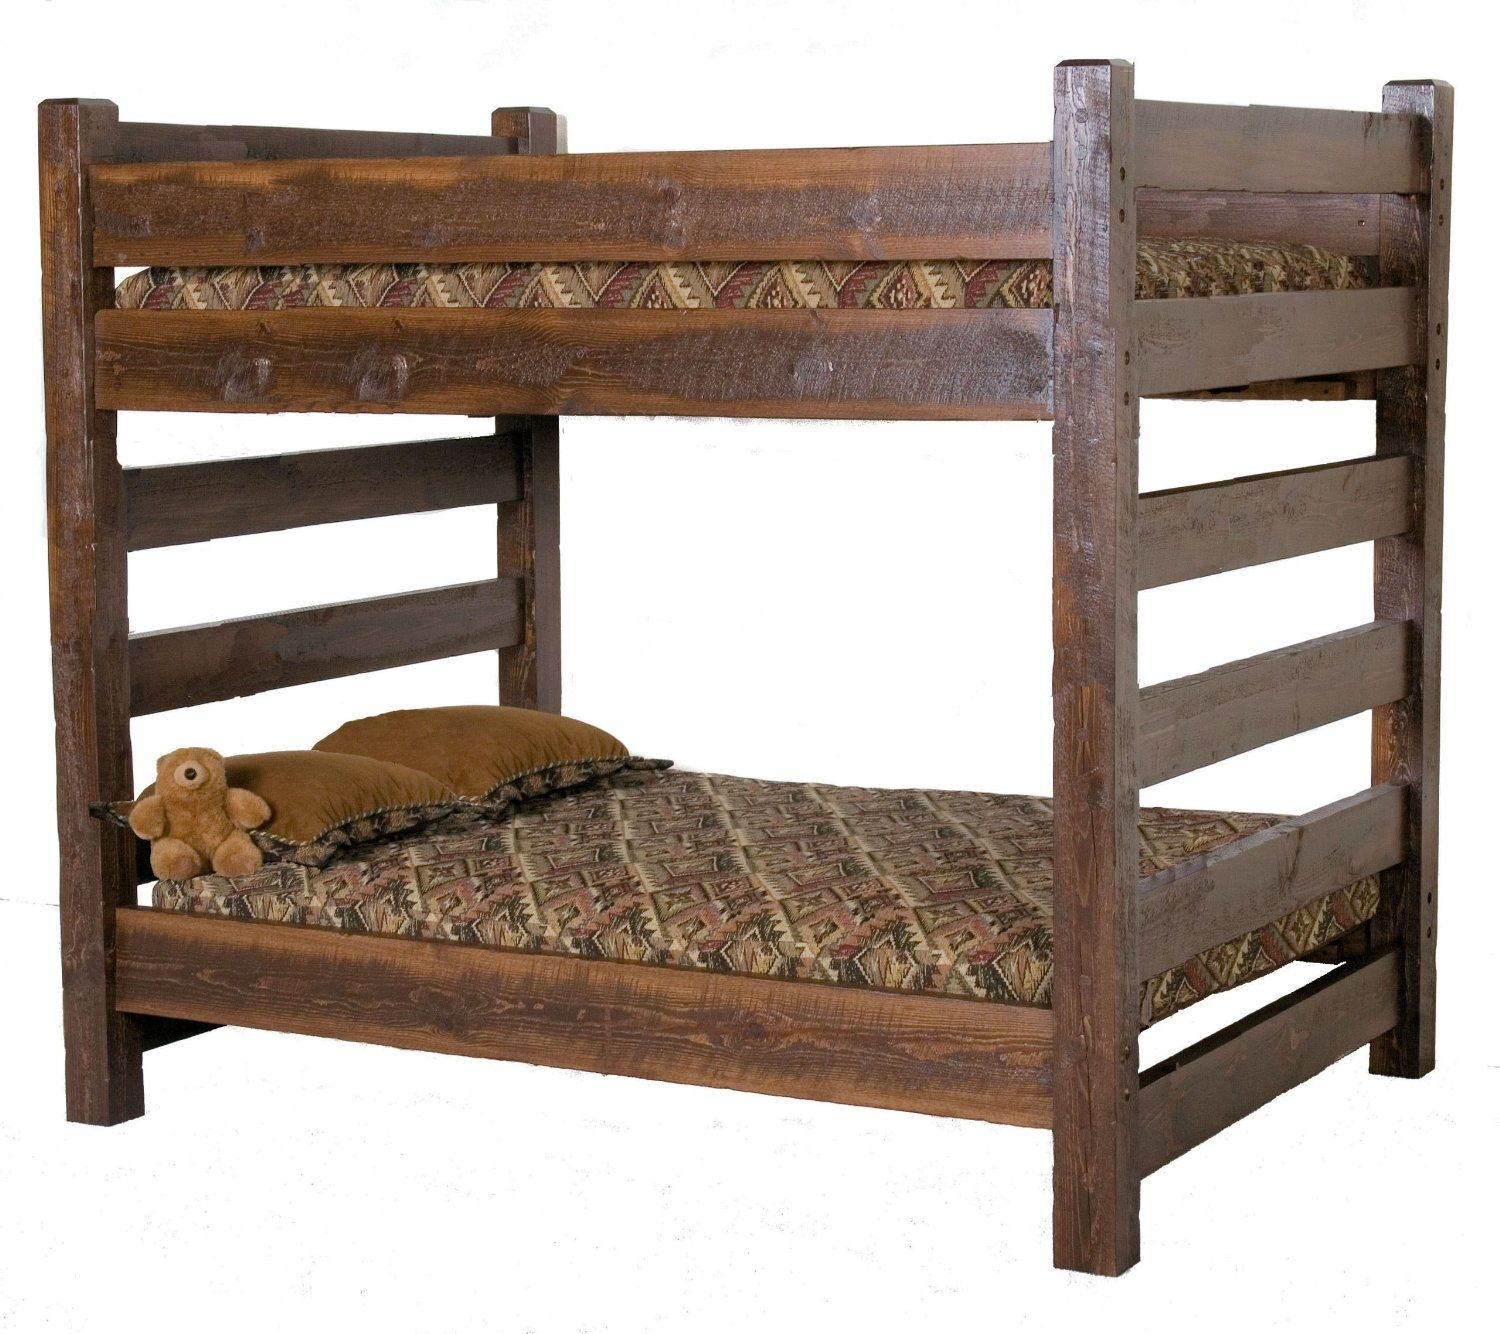 Adorable queen size bunk beds design ideas bunkbeds Loft bed plans